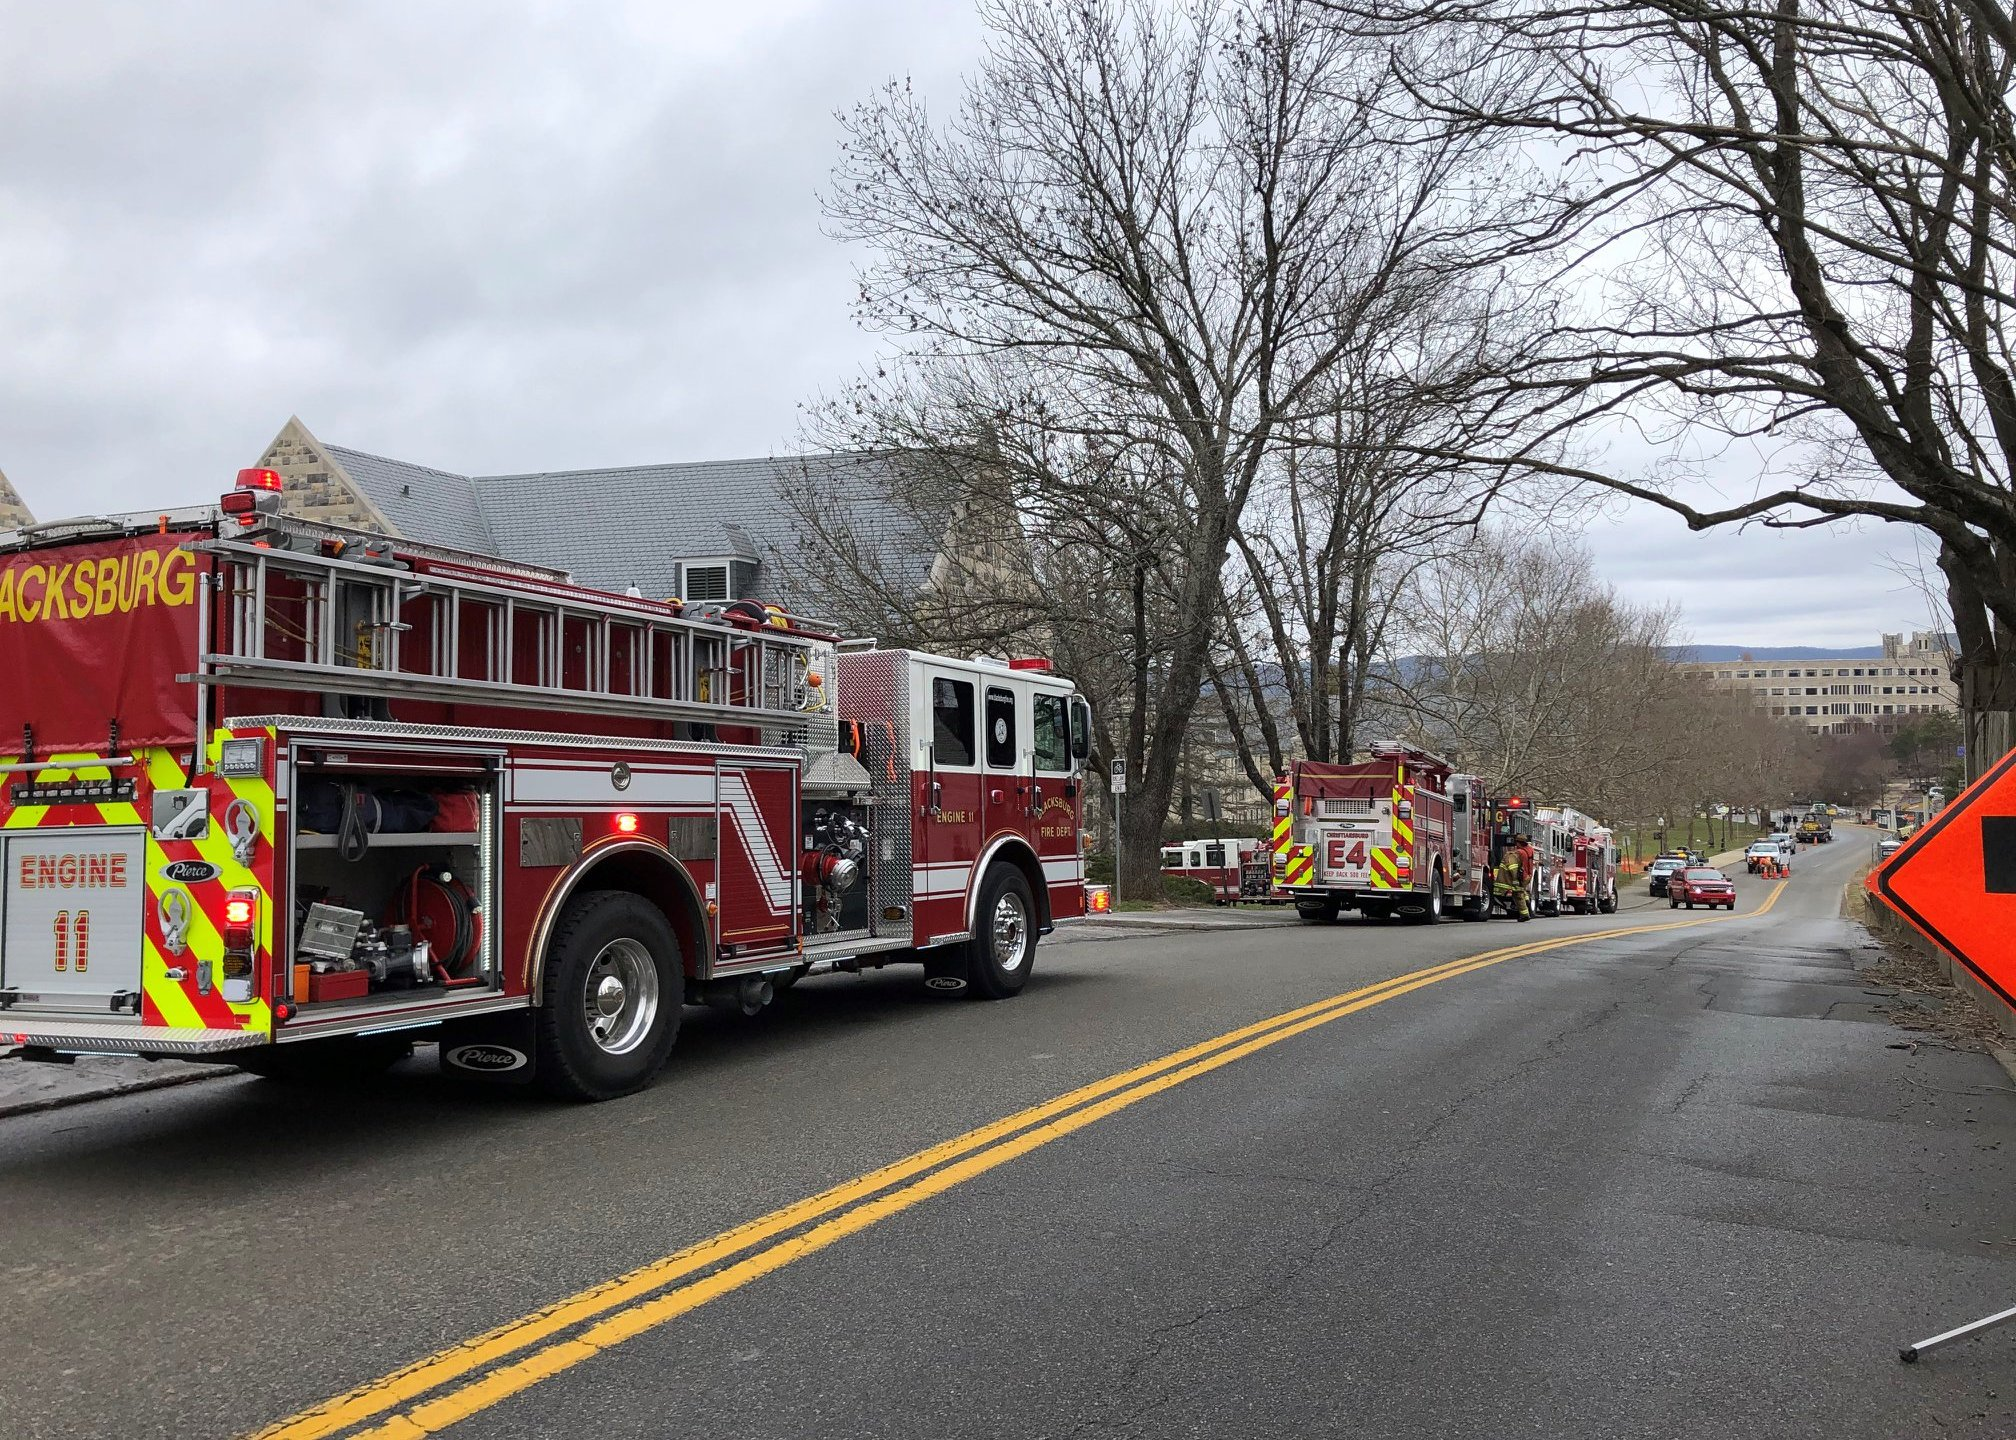 First responders were dispatched to a fire at a Virginia Tech dorm building on Monday, Feb. 24. (Photo: Courtesy Montgomery County Emergency Services)